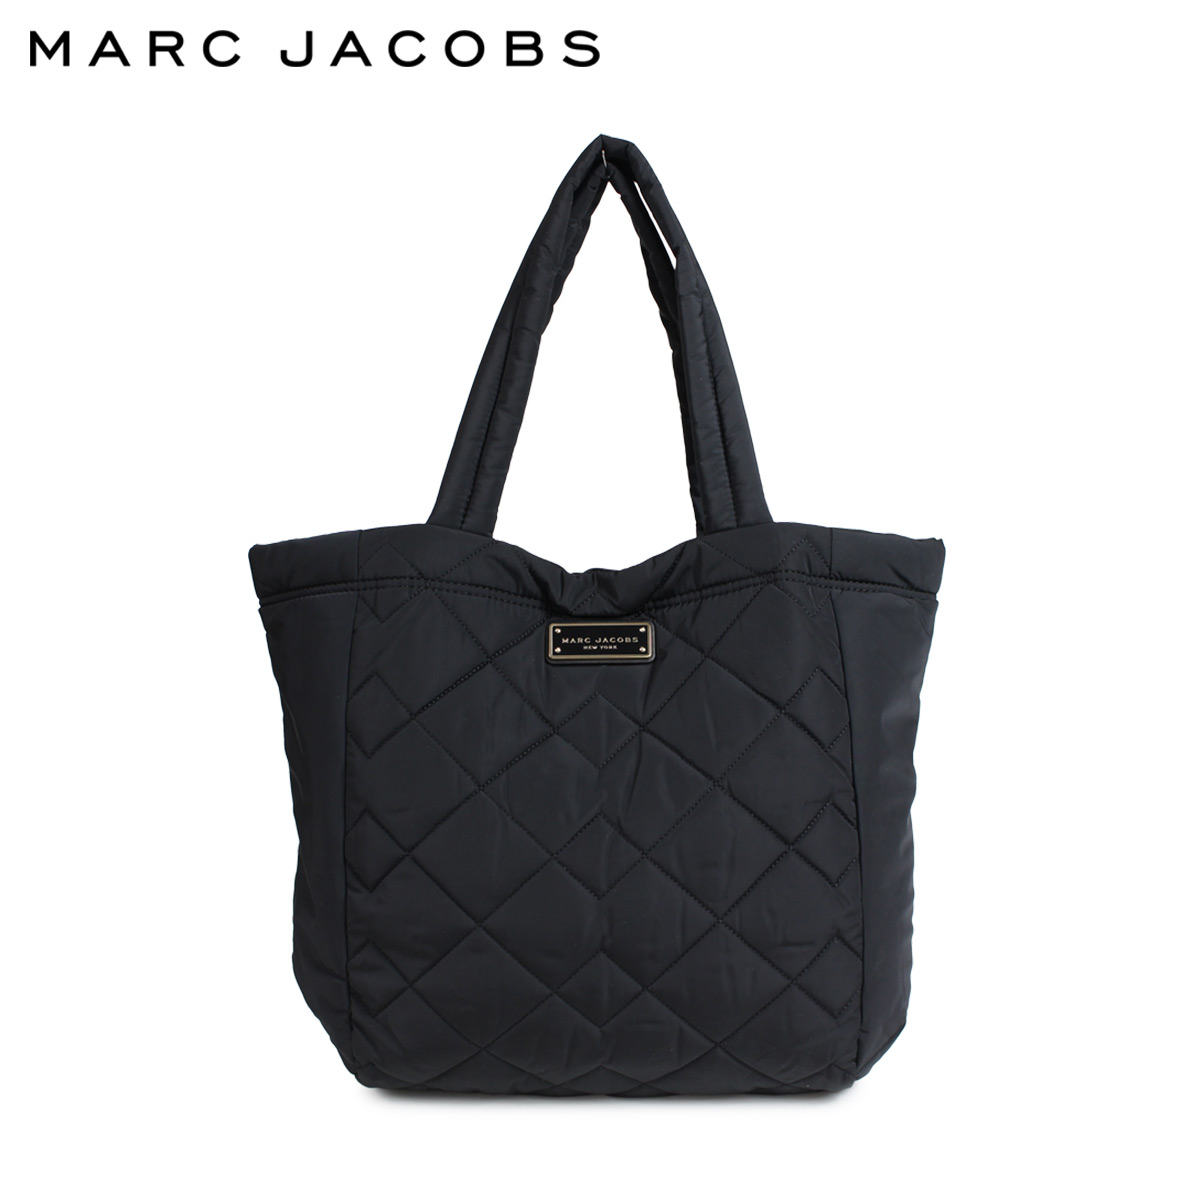 MARC JACOBS QUILTED TOTE マークジェイコブス トートバッグ バッグ マザーズバッグ レディース ブラック M0011322